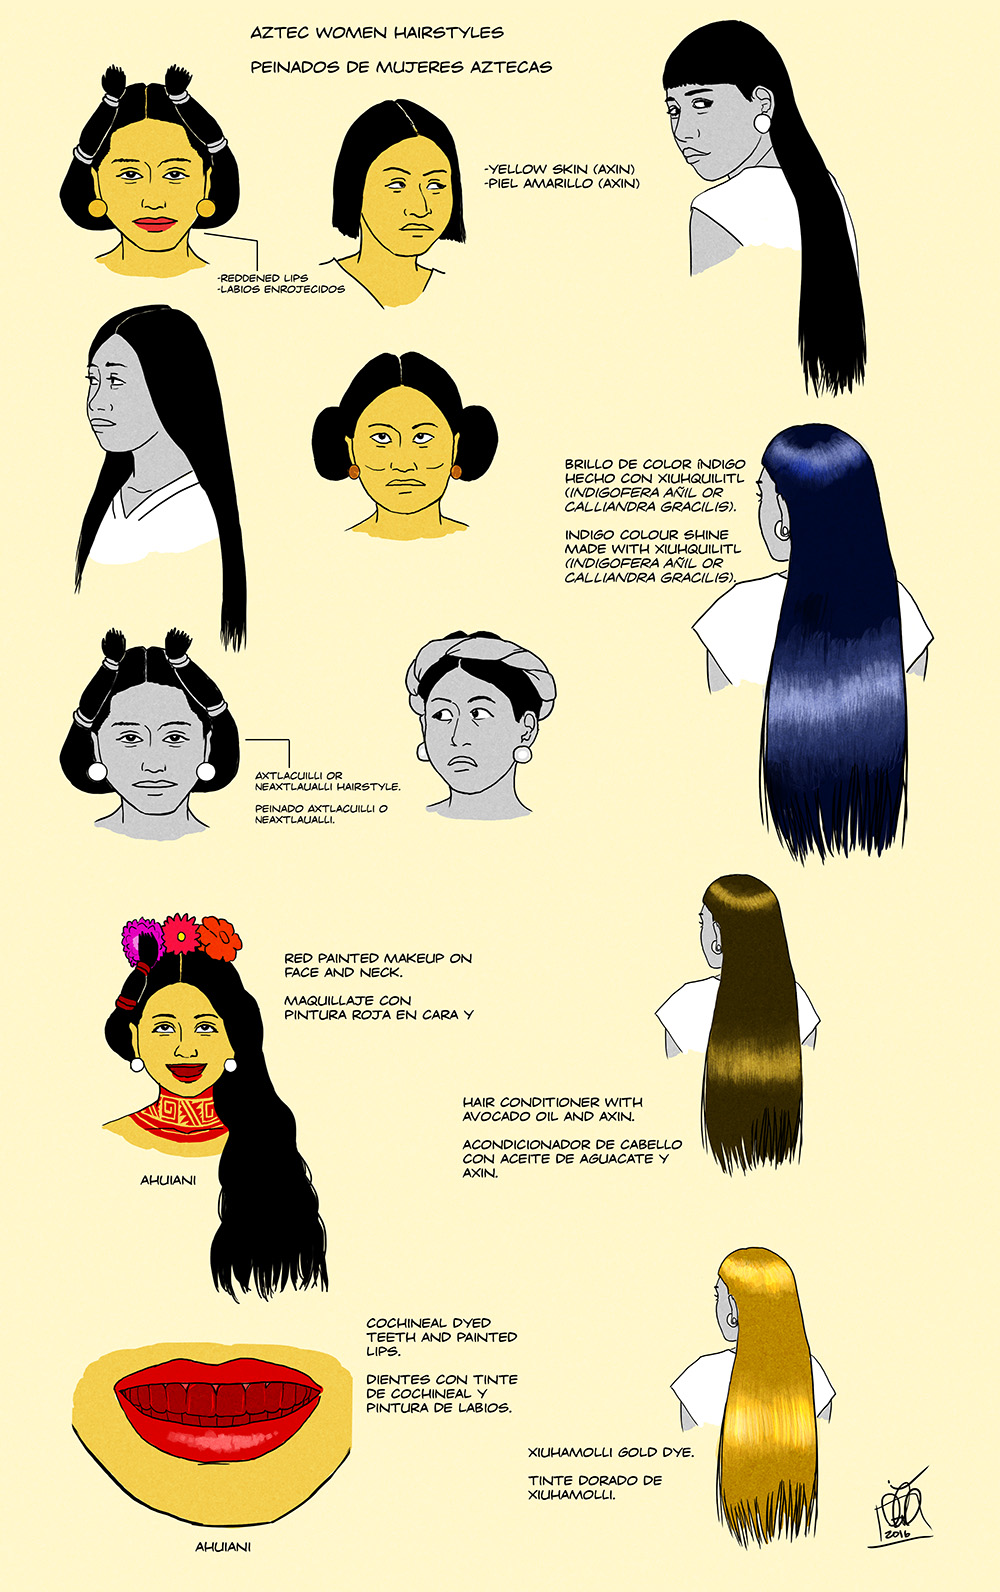 Aztec Women Hairstyles By Kamazotz On Deviantart